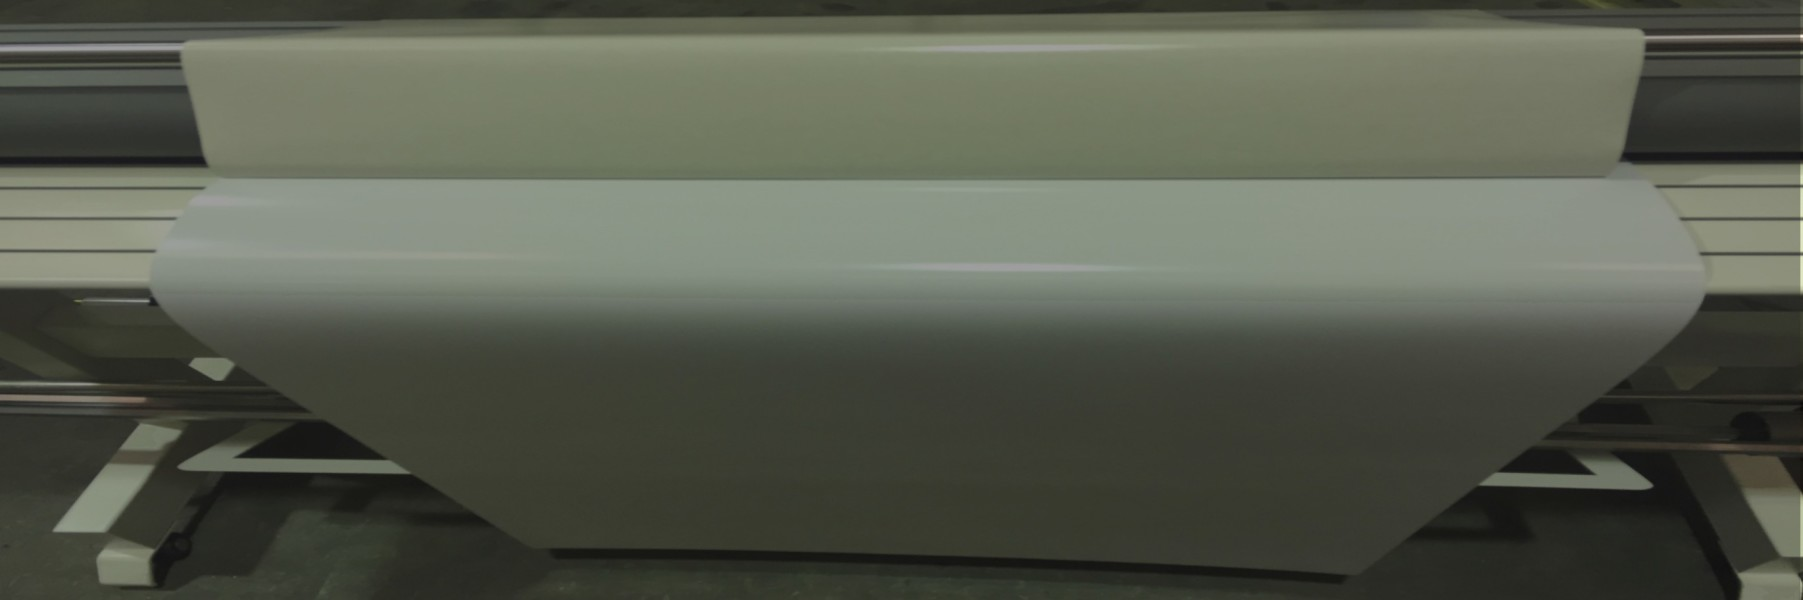 SELF-ADHESIVE LAMINATING SERVICE